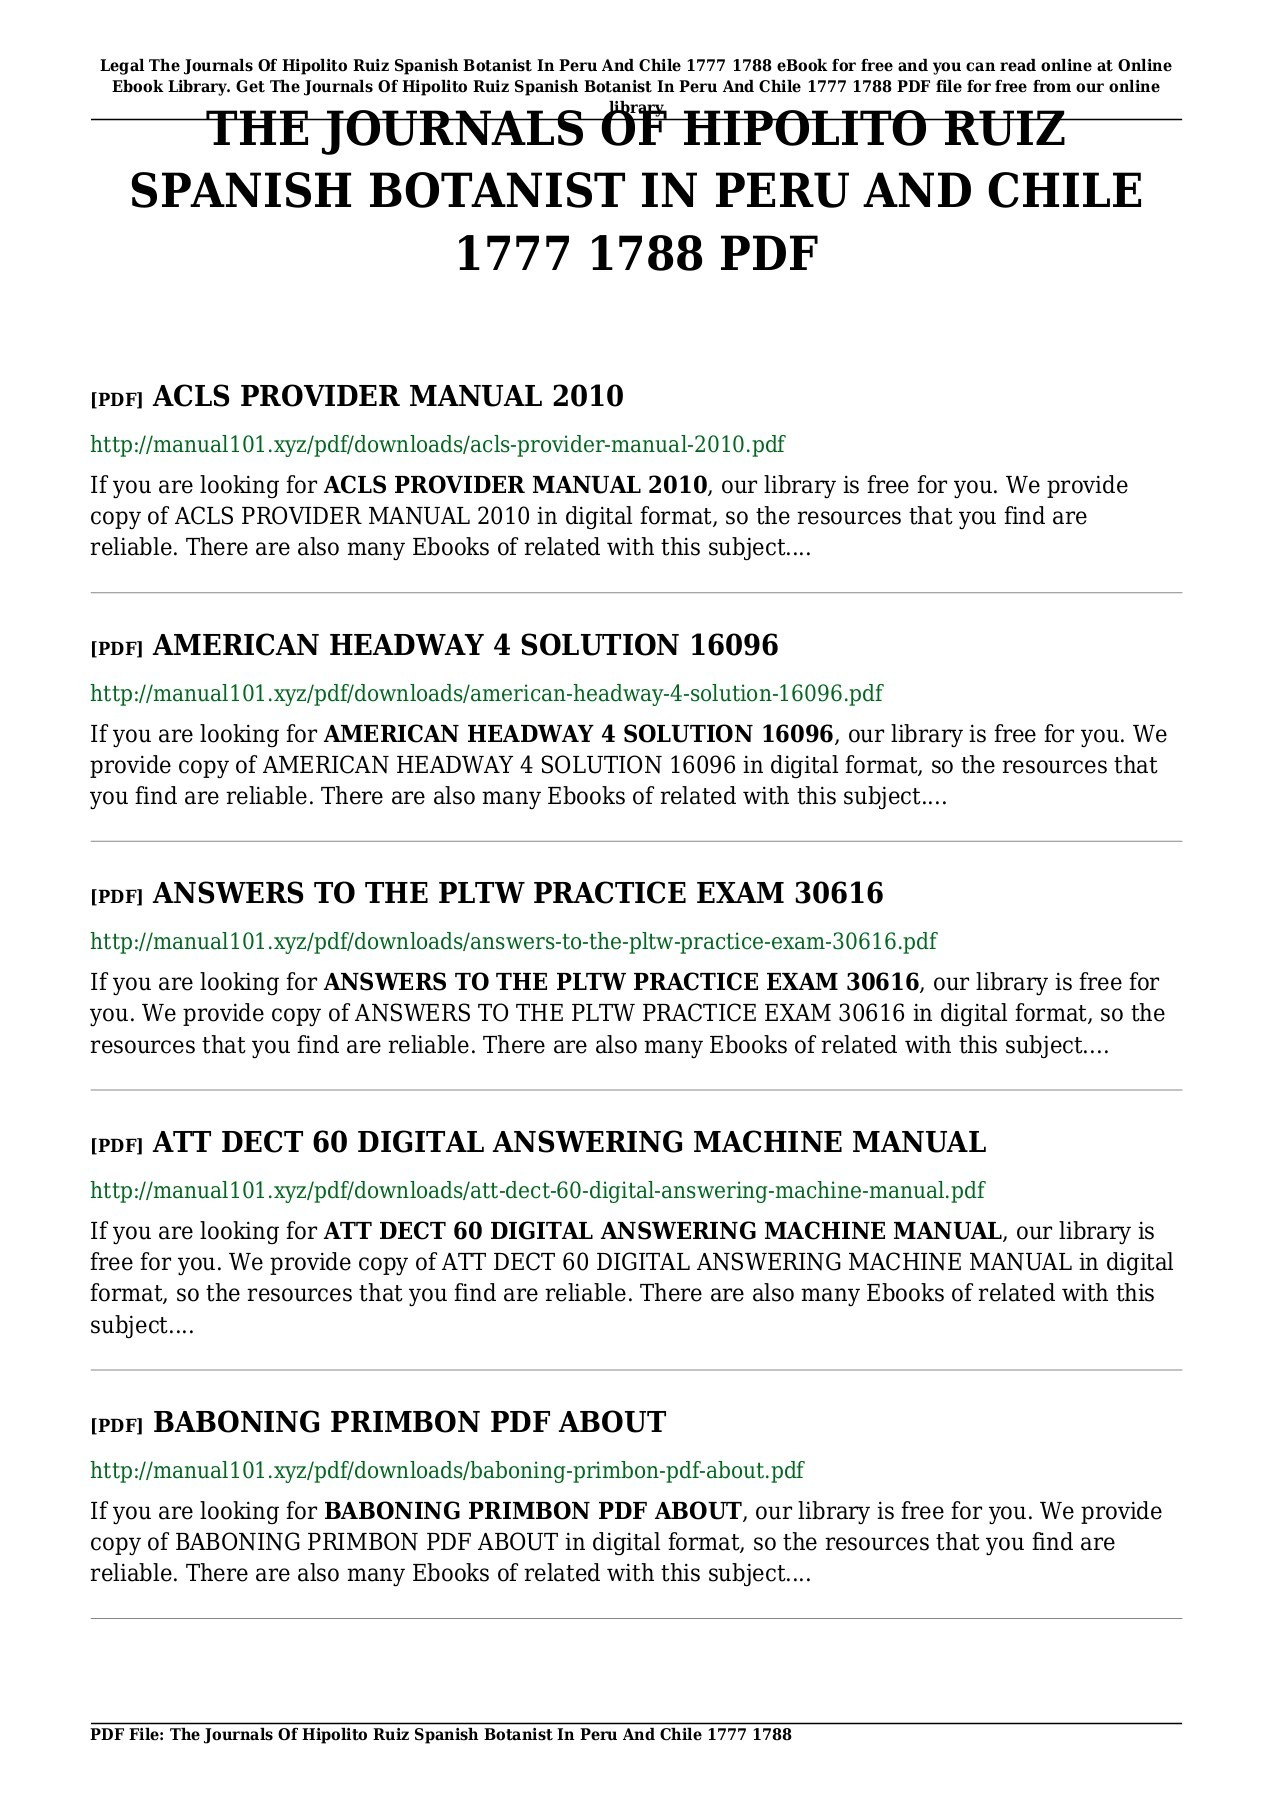 Acls manuals ebook array best free fillable forms acls questions and answers pdf free rh lifechallengingrides us fandeluxe Image collections